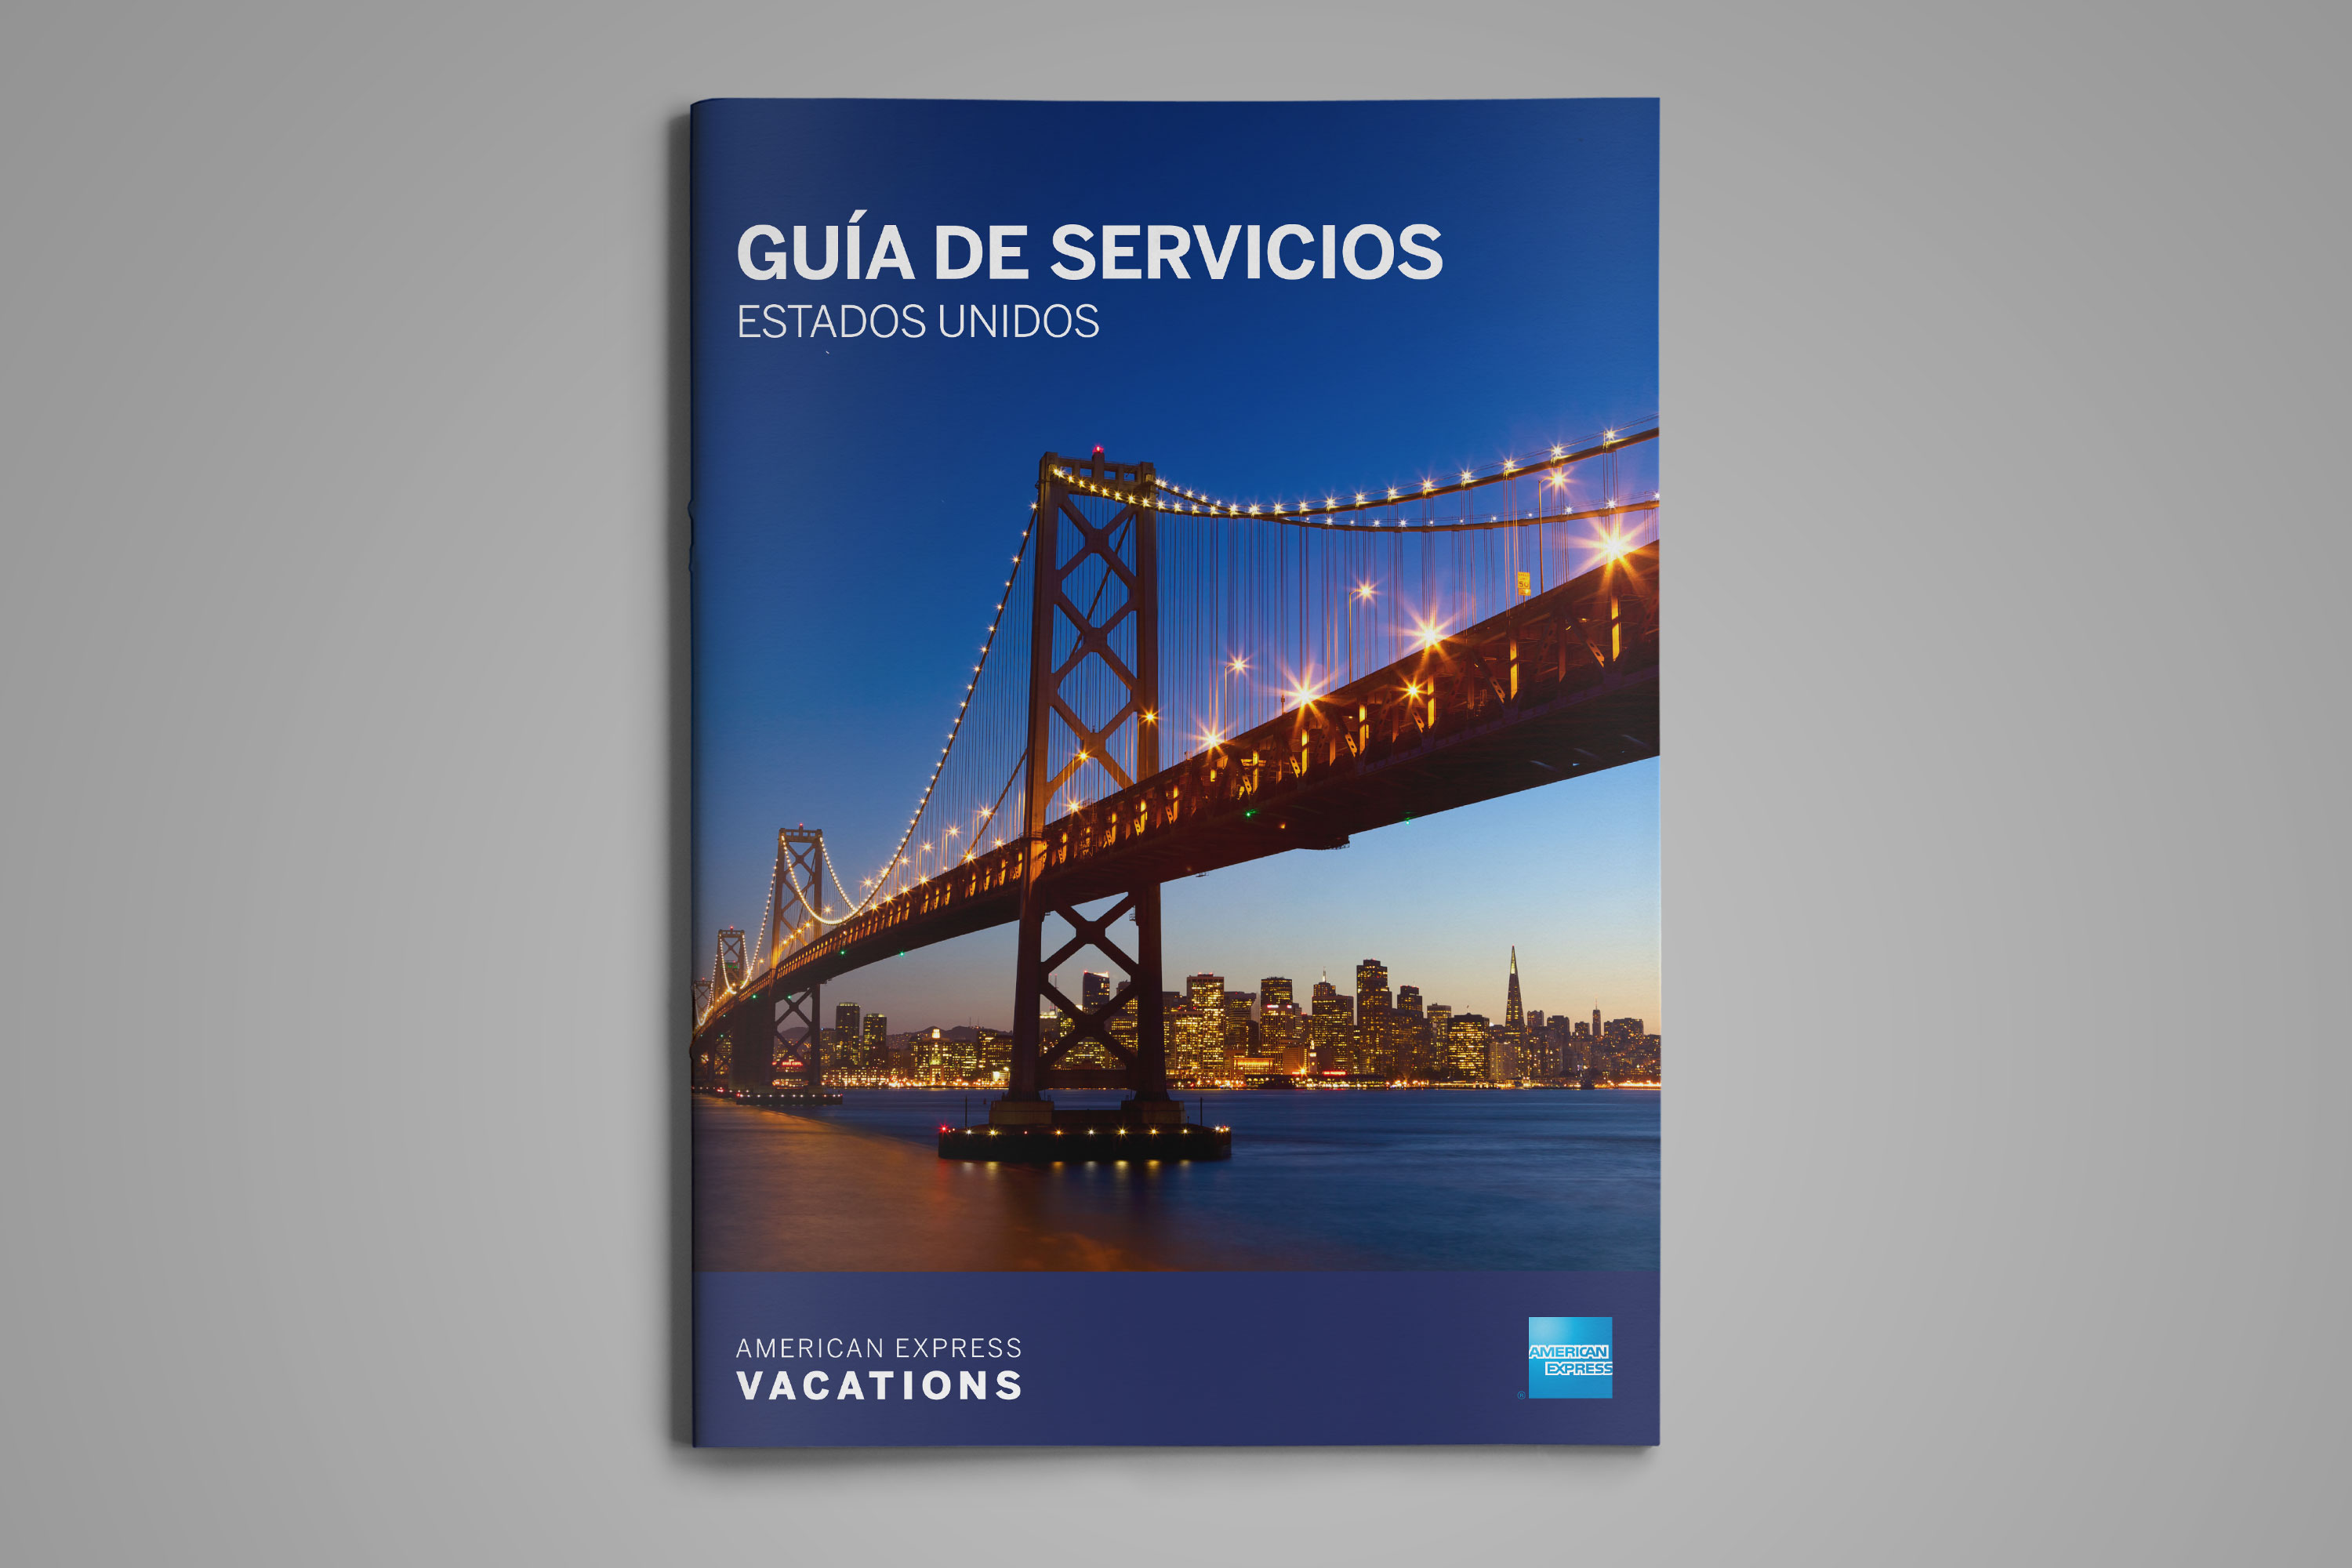 01-guia-servicio-usa-travel-amex